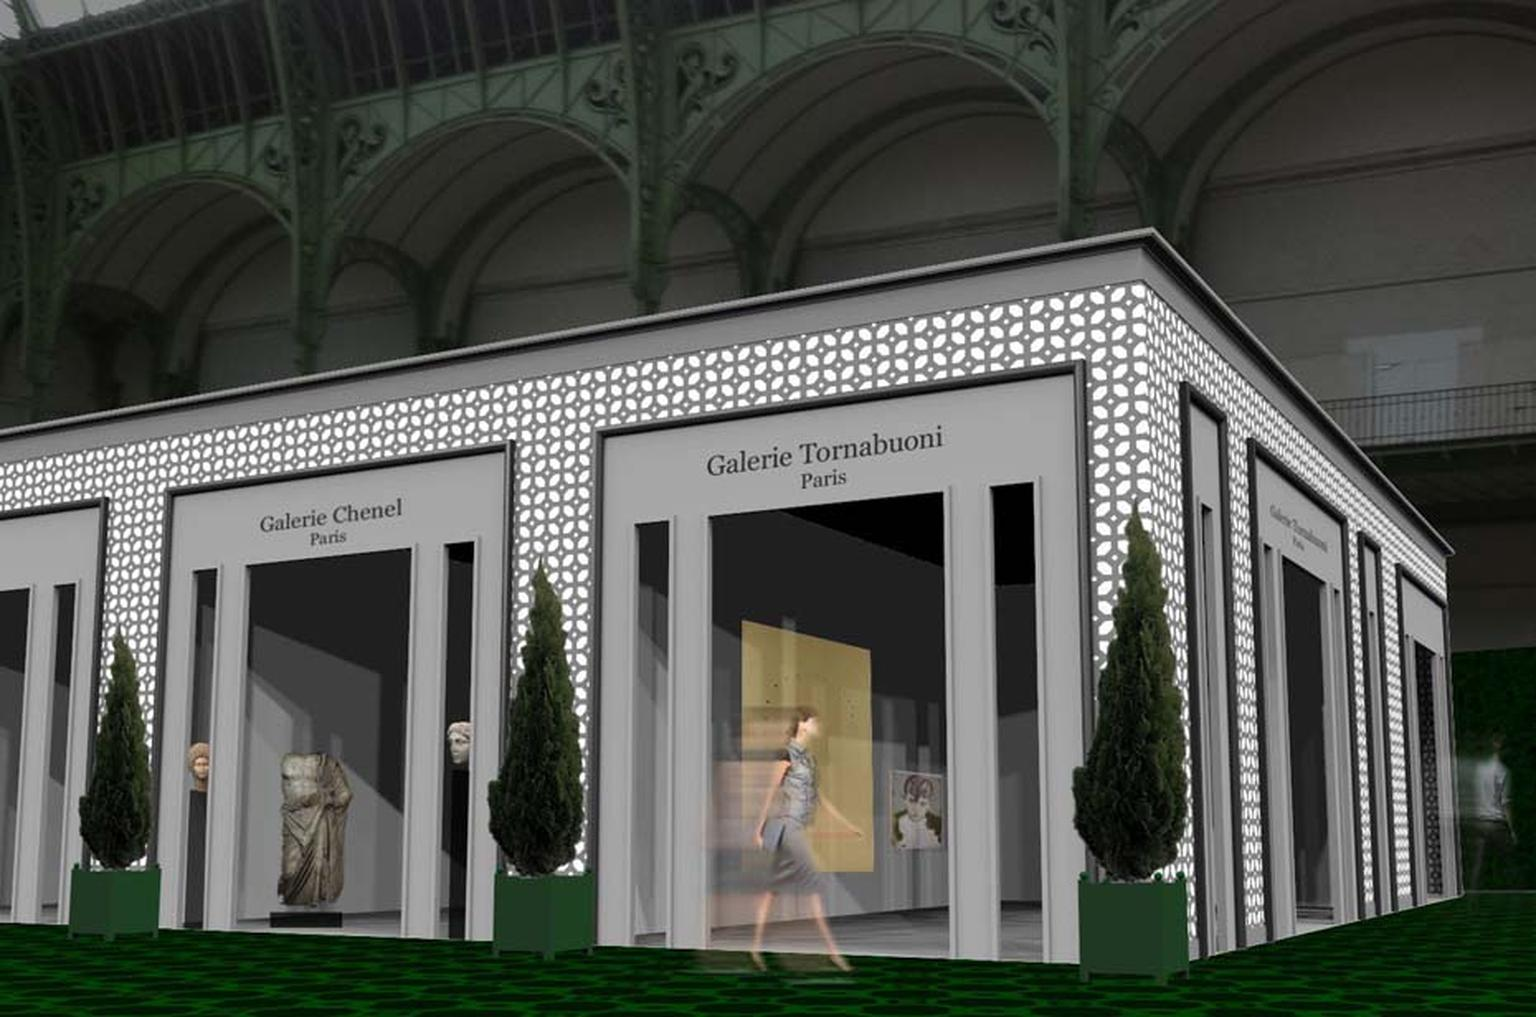 An artist's impression of what the inside of the Grand Palais will look like for the 2014 Biennale des Antiquaires, inspired by the Gardens of Versailles.